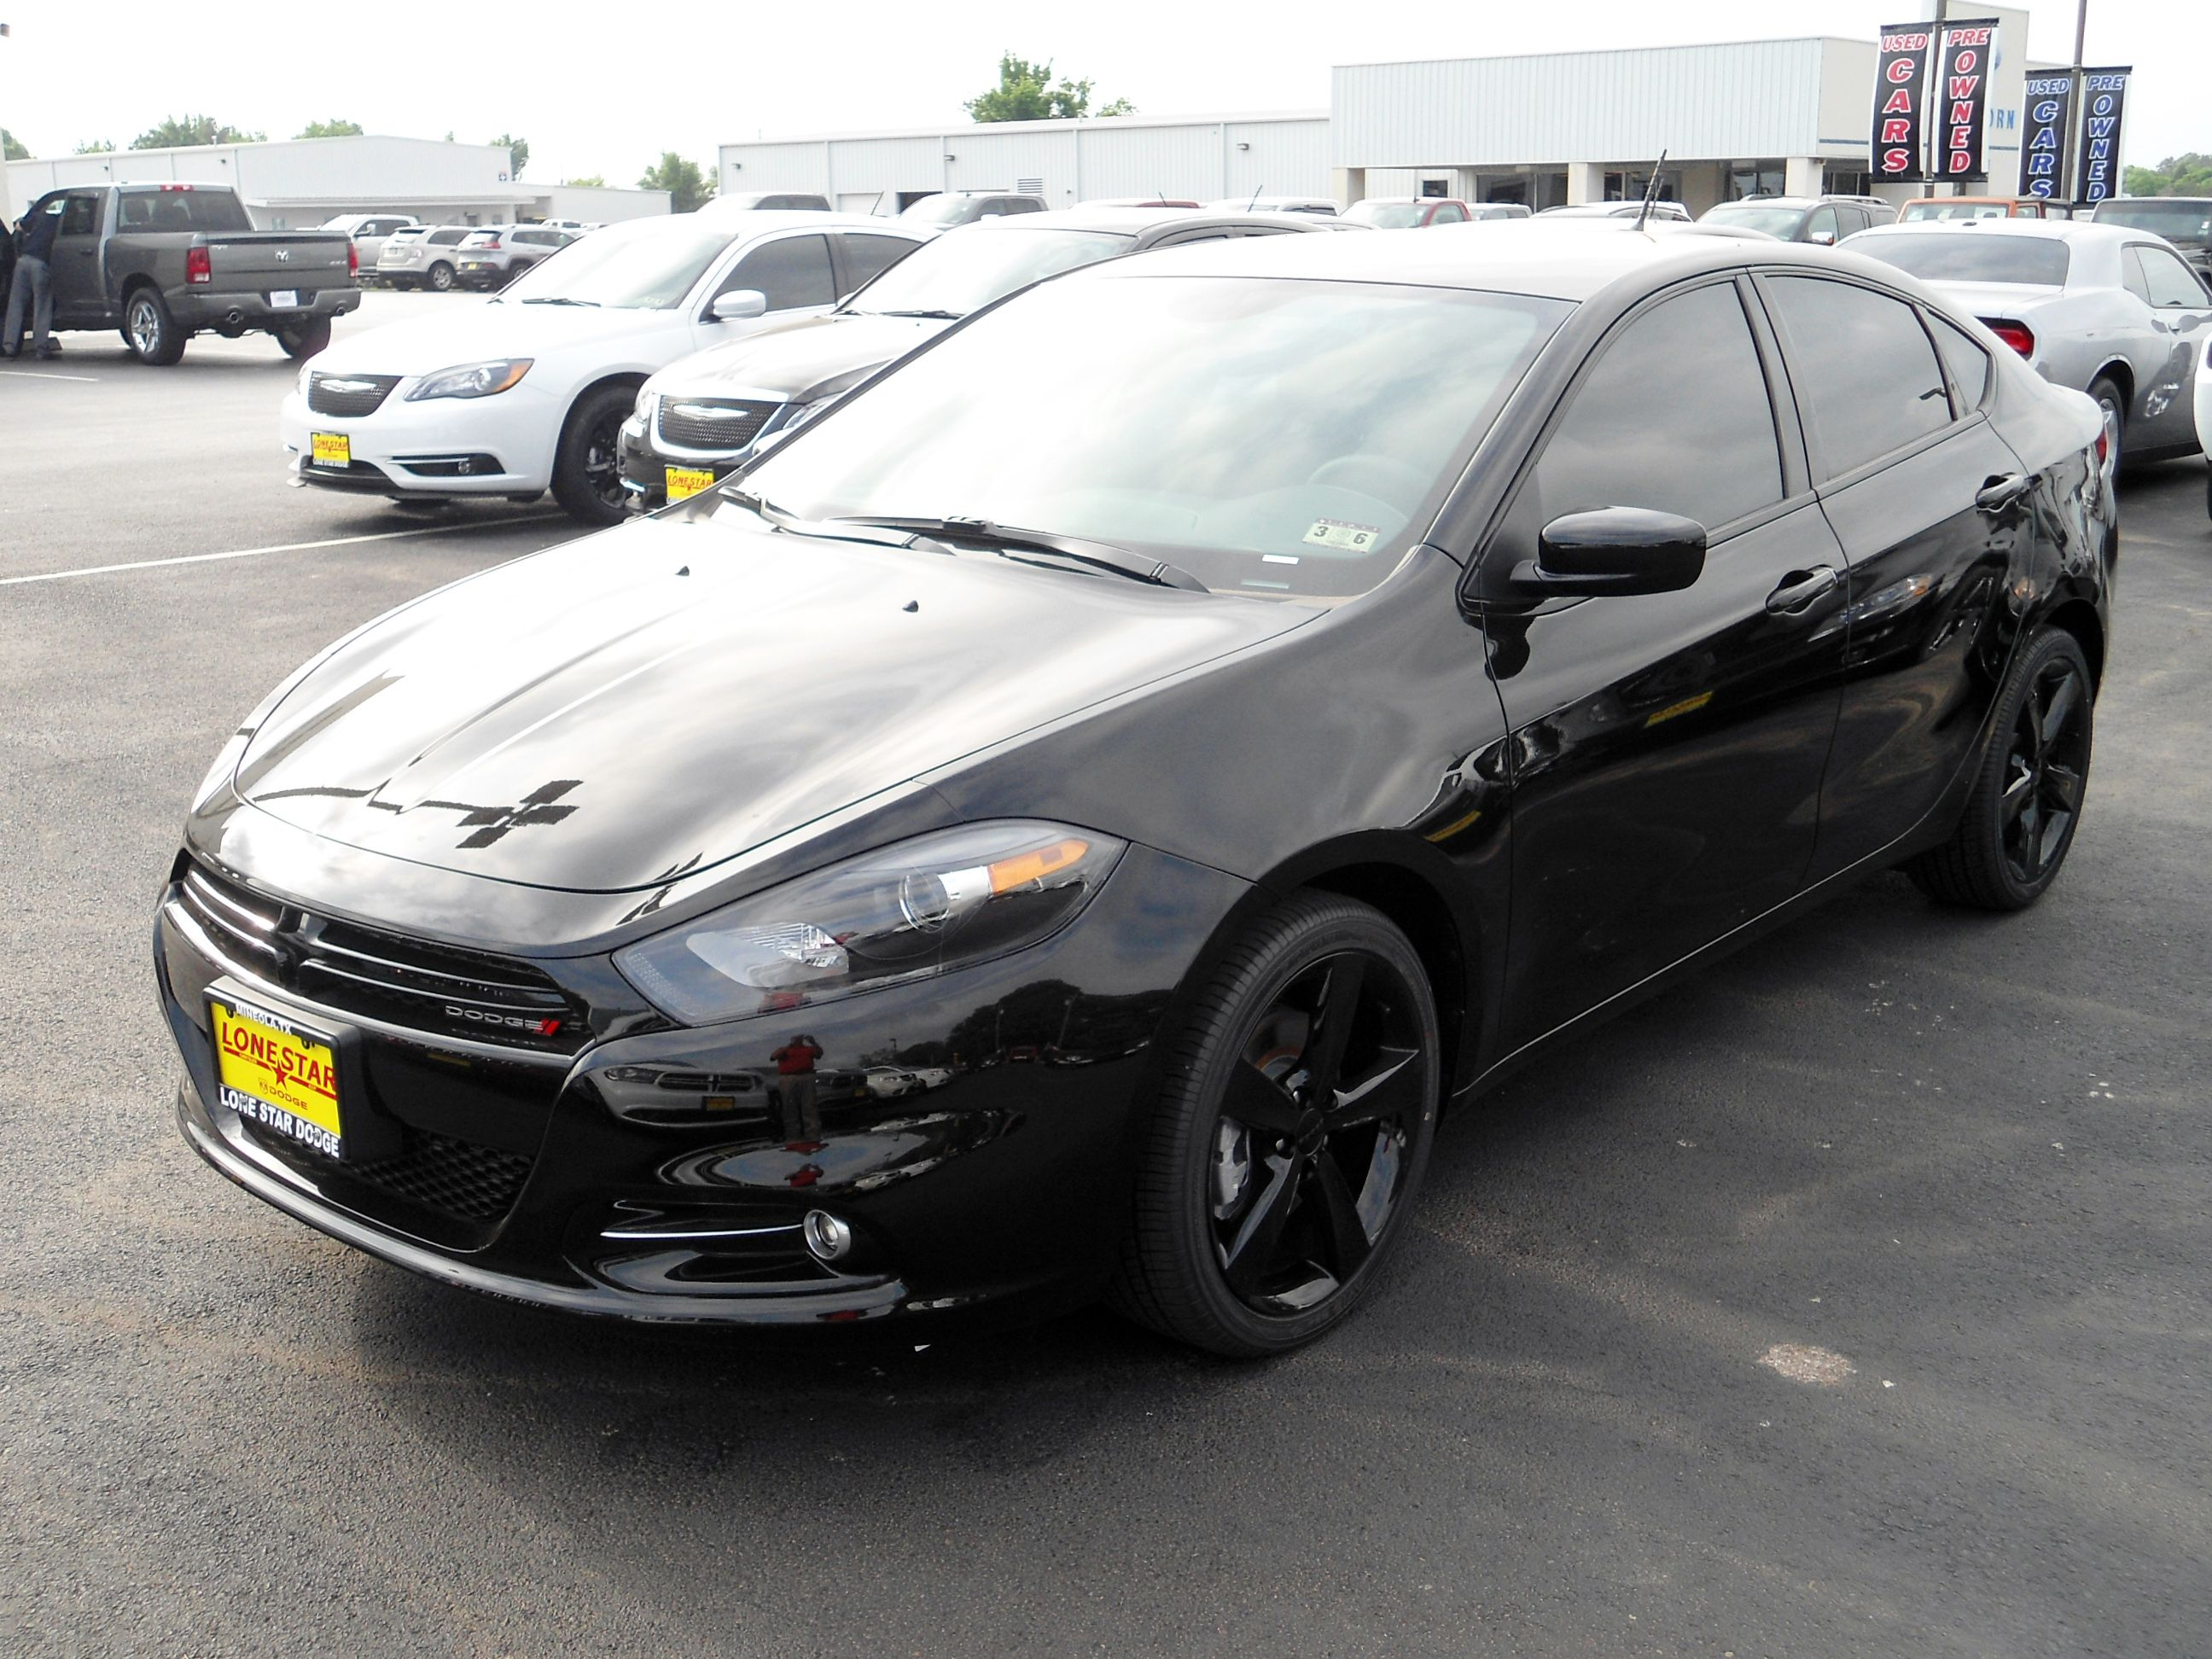 2014 Dodge Dart Sxt Equipped With The Blacktop Package And Rallye